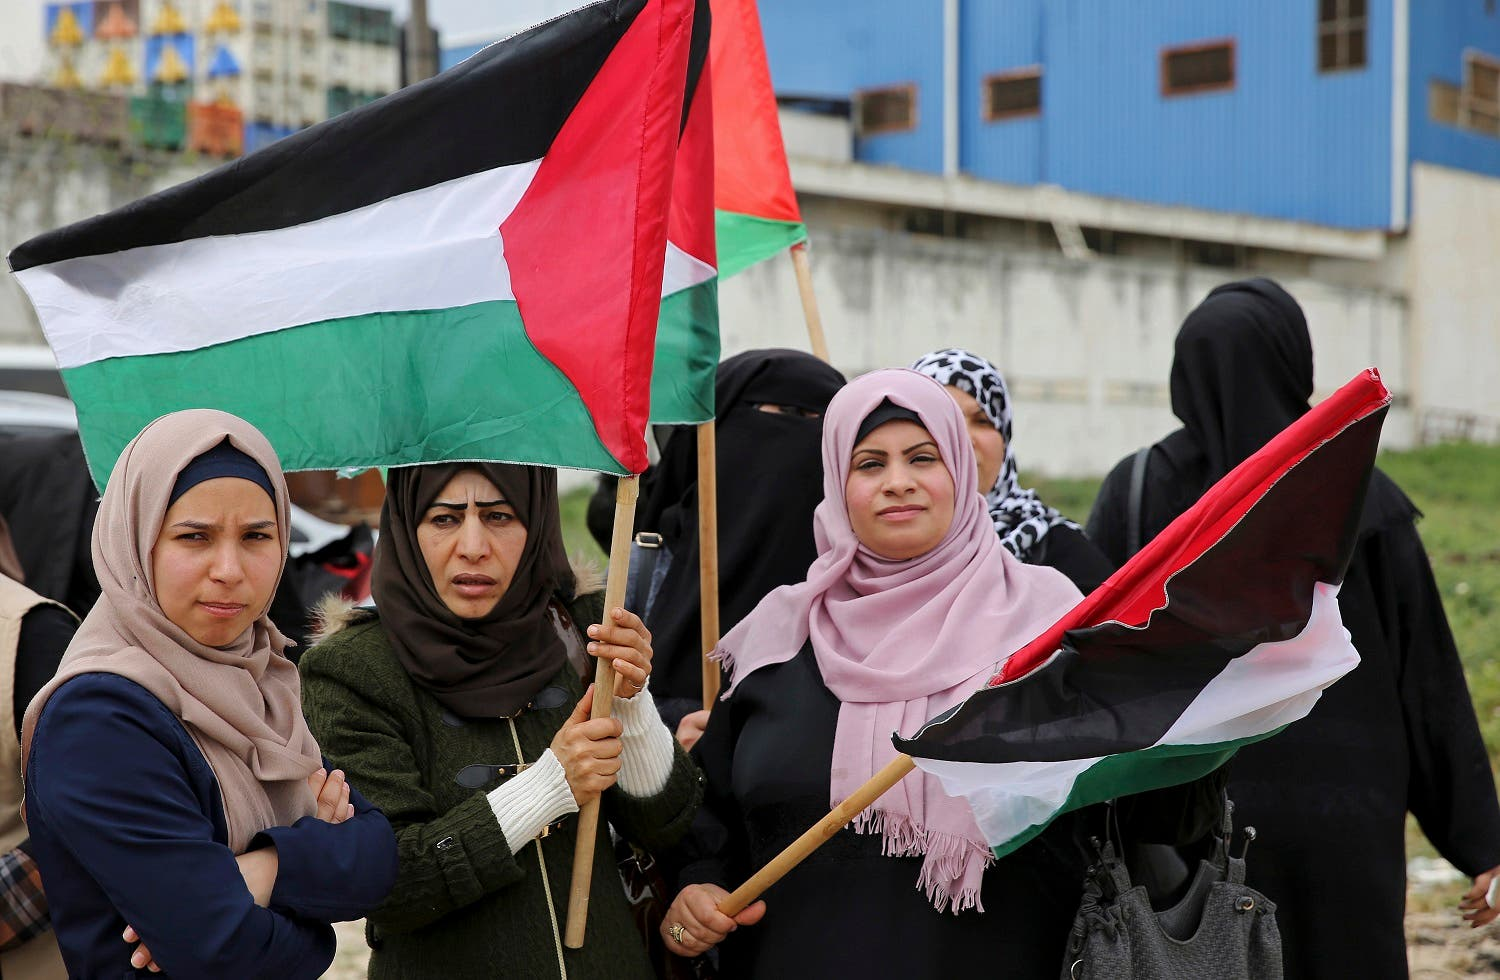 Women wave flags during a rally marking the 41st anniversary of Land Day, on the Palestinian side of the Beit Hanoun border crossing between Israel and the Gaza Strip on March 30, 2017. (AP)